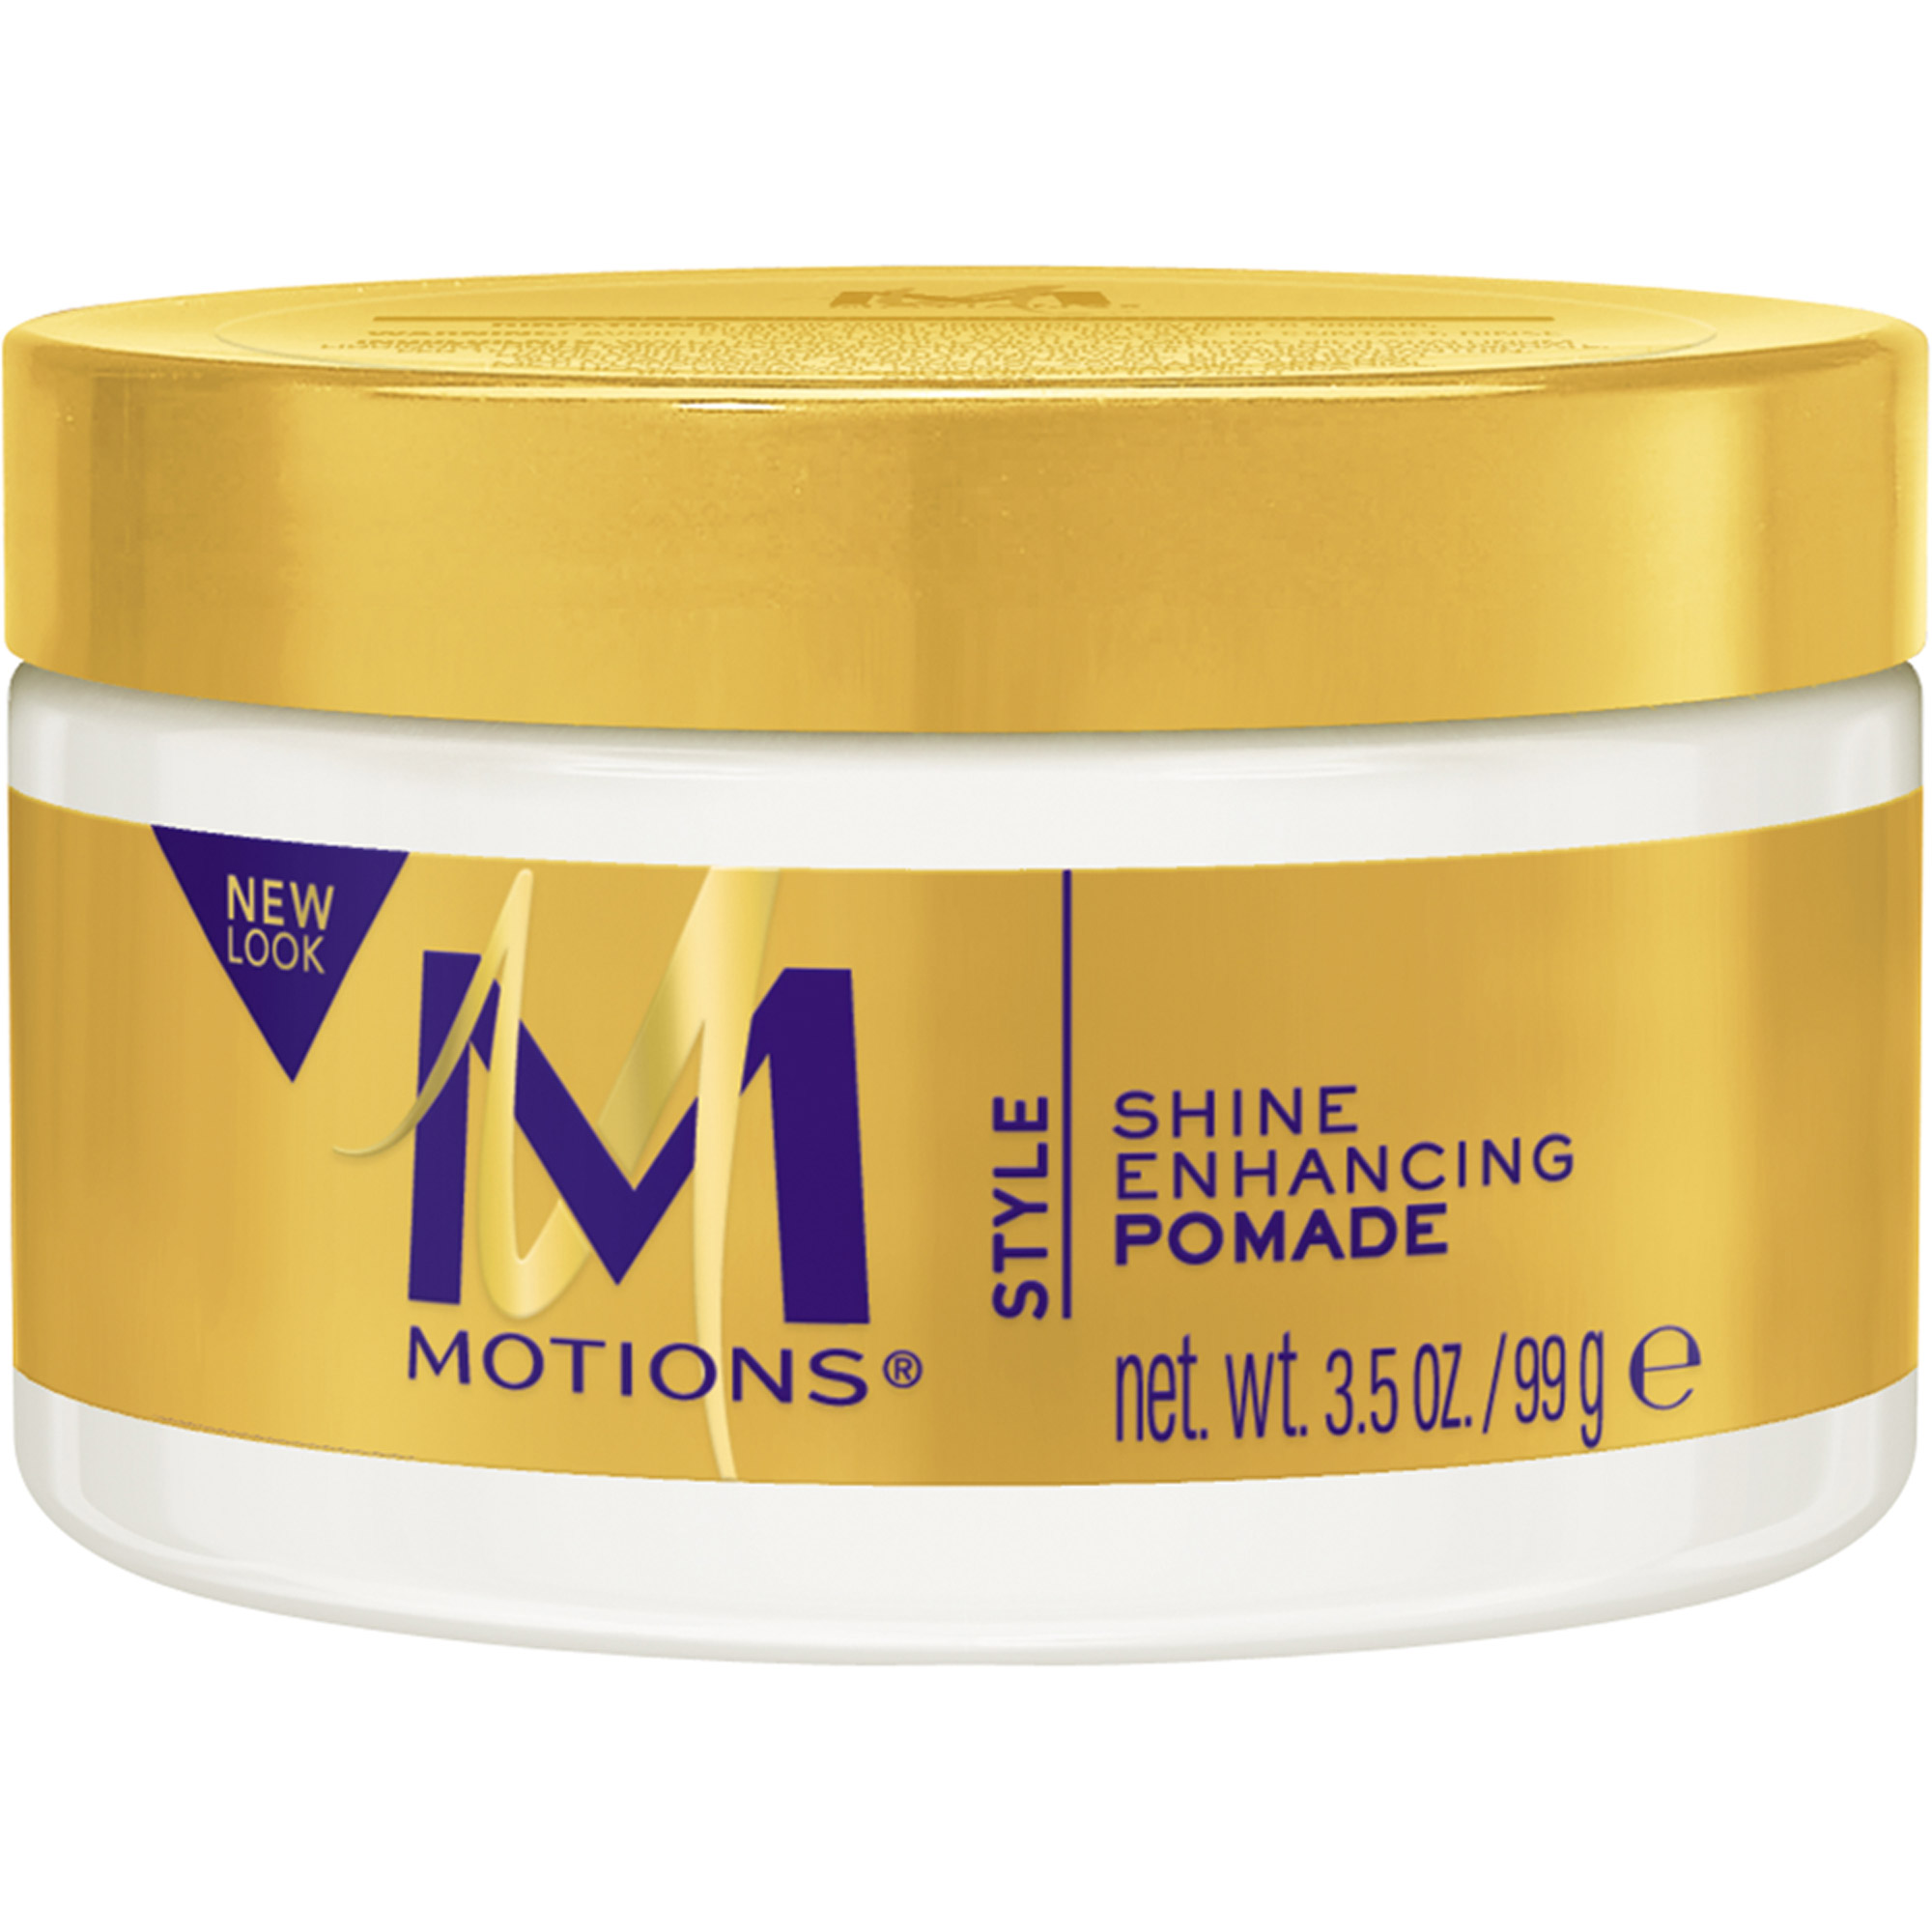 Motions Shine Enhancing Pomade, 3.5 oz